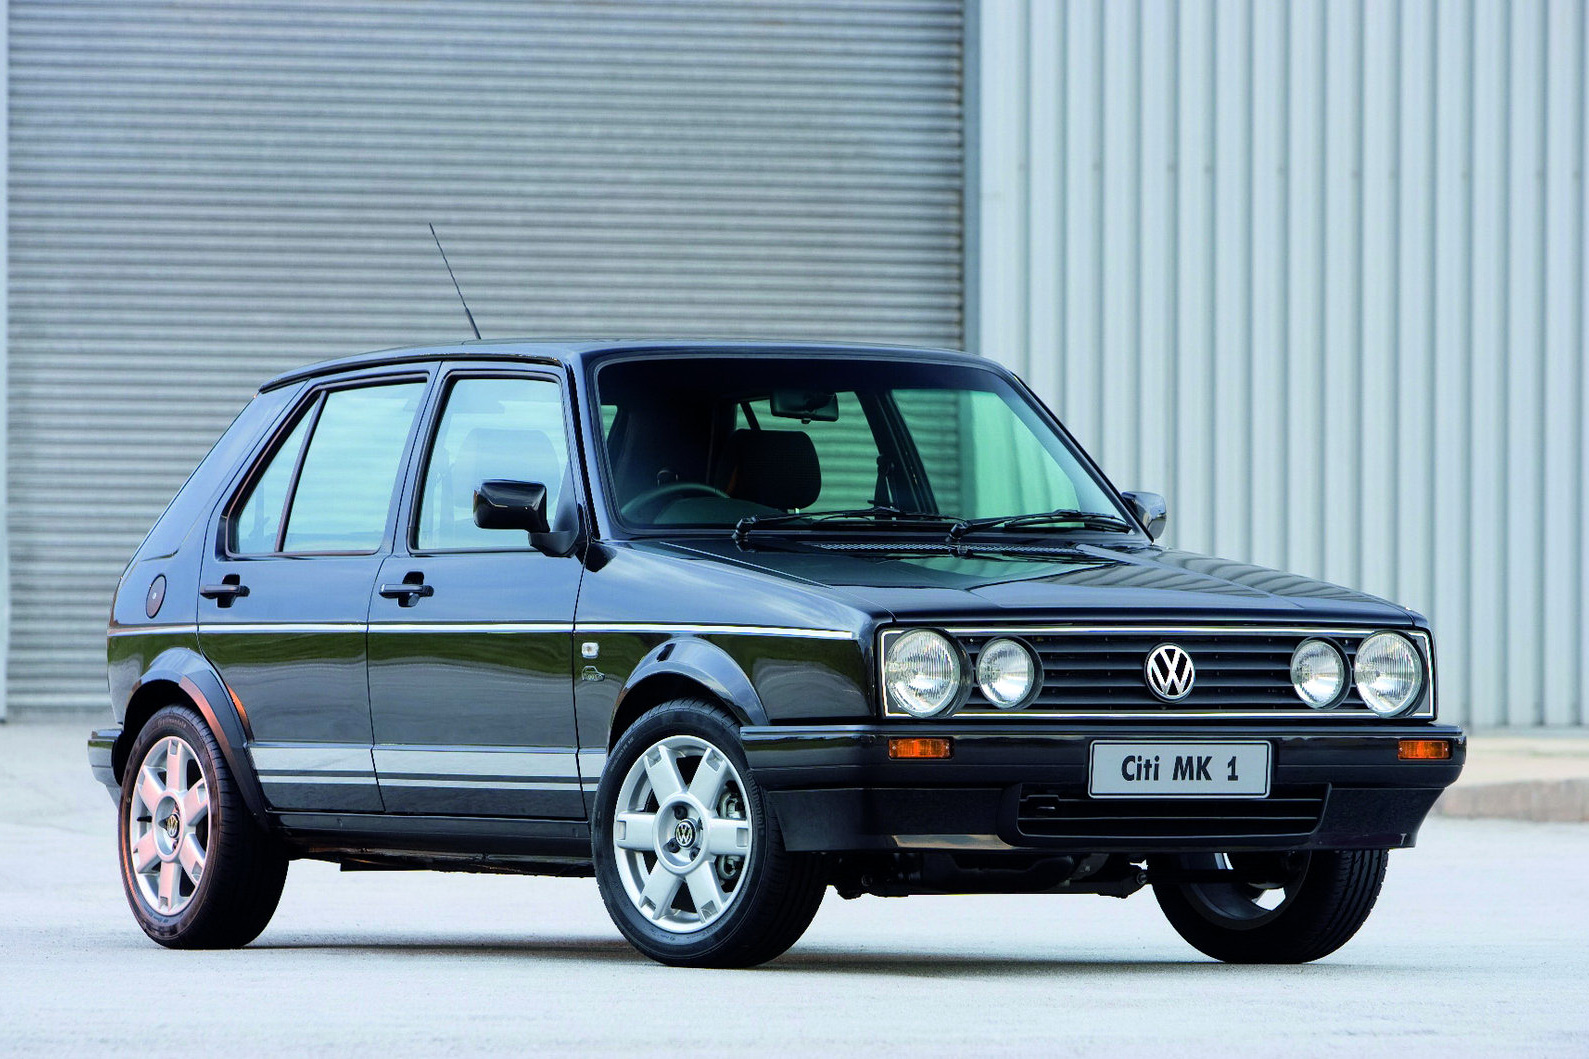 volkswagen golf mk1 gets off the production line autoevolution. Black Bedroom Furniture Sets. Home Design Ideas